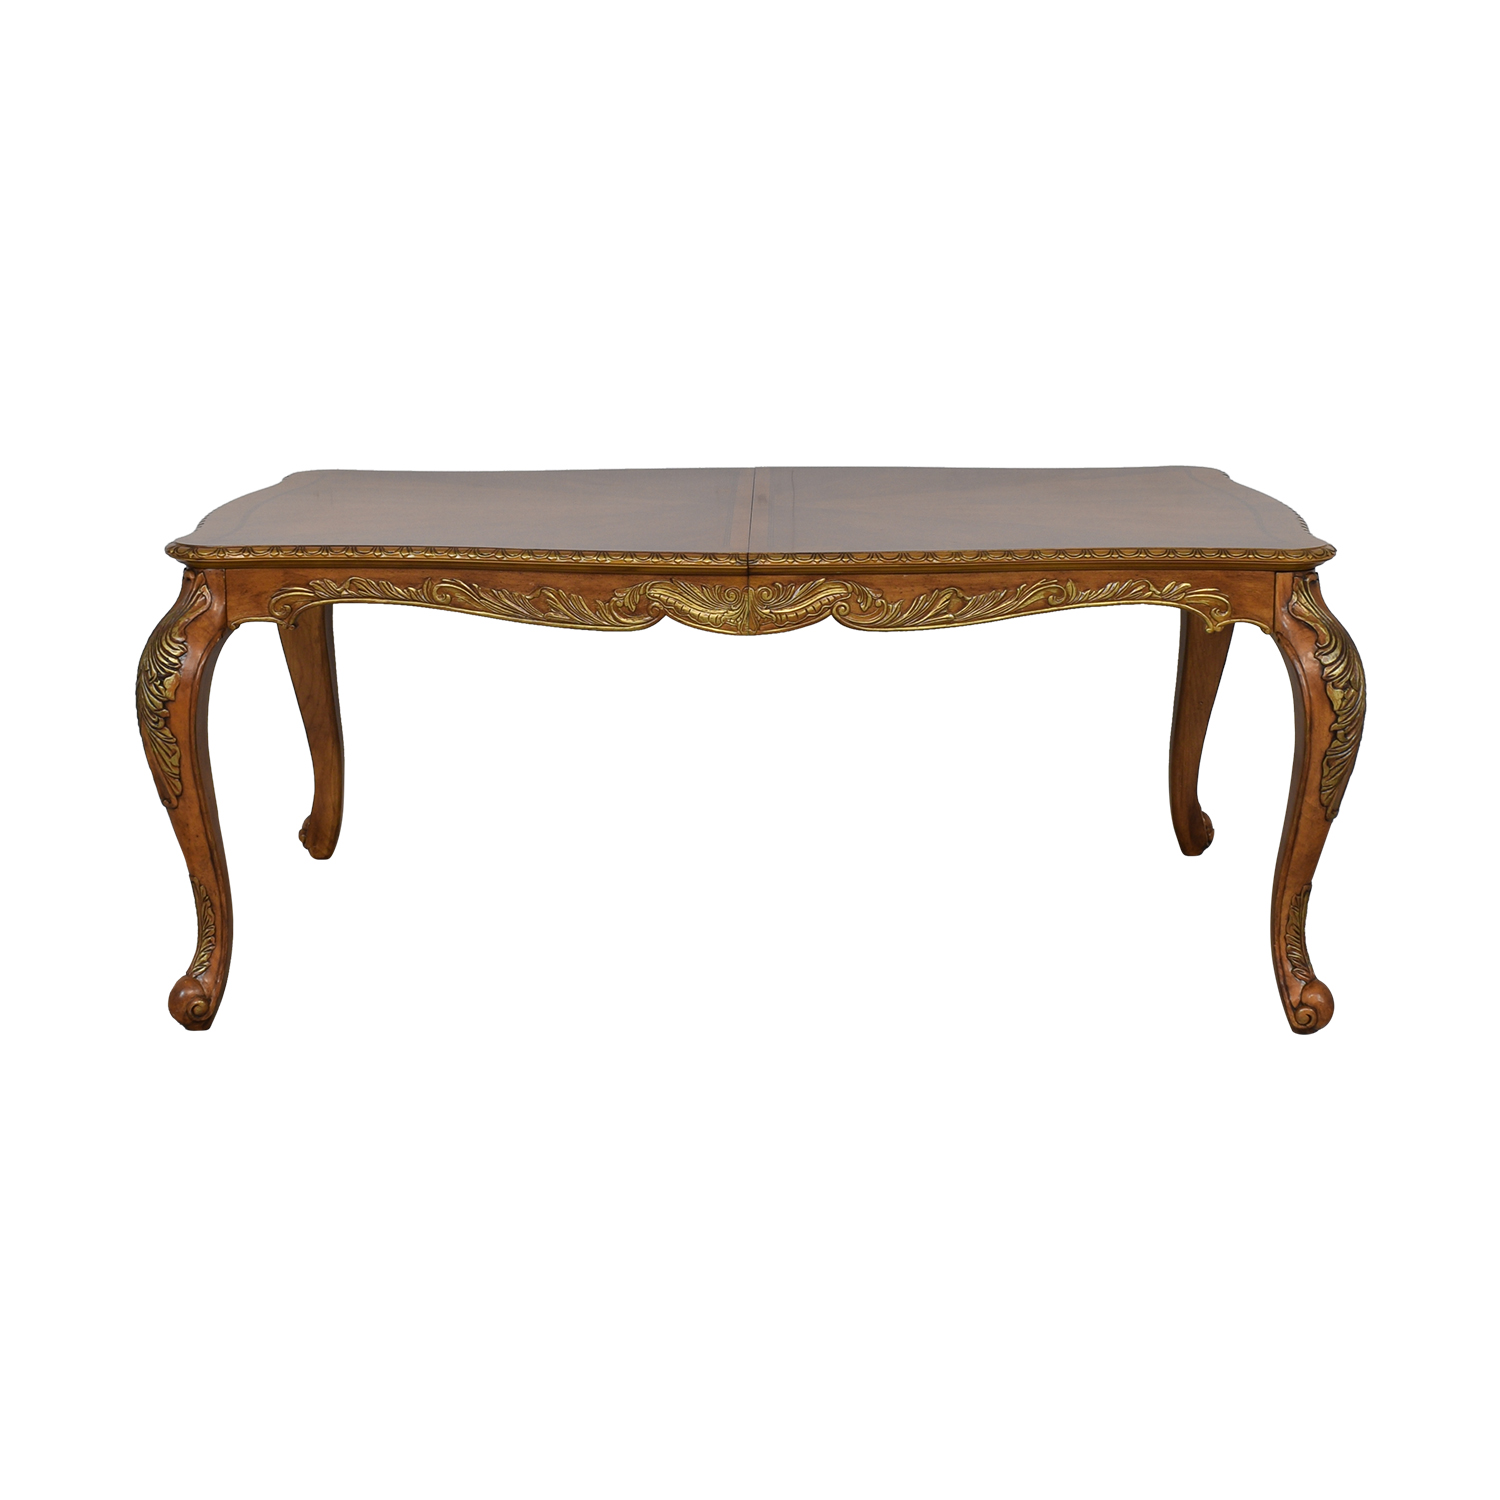 buy Raymour & Flanigan Extendable Dining Table Raymour & Flanigan Tables